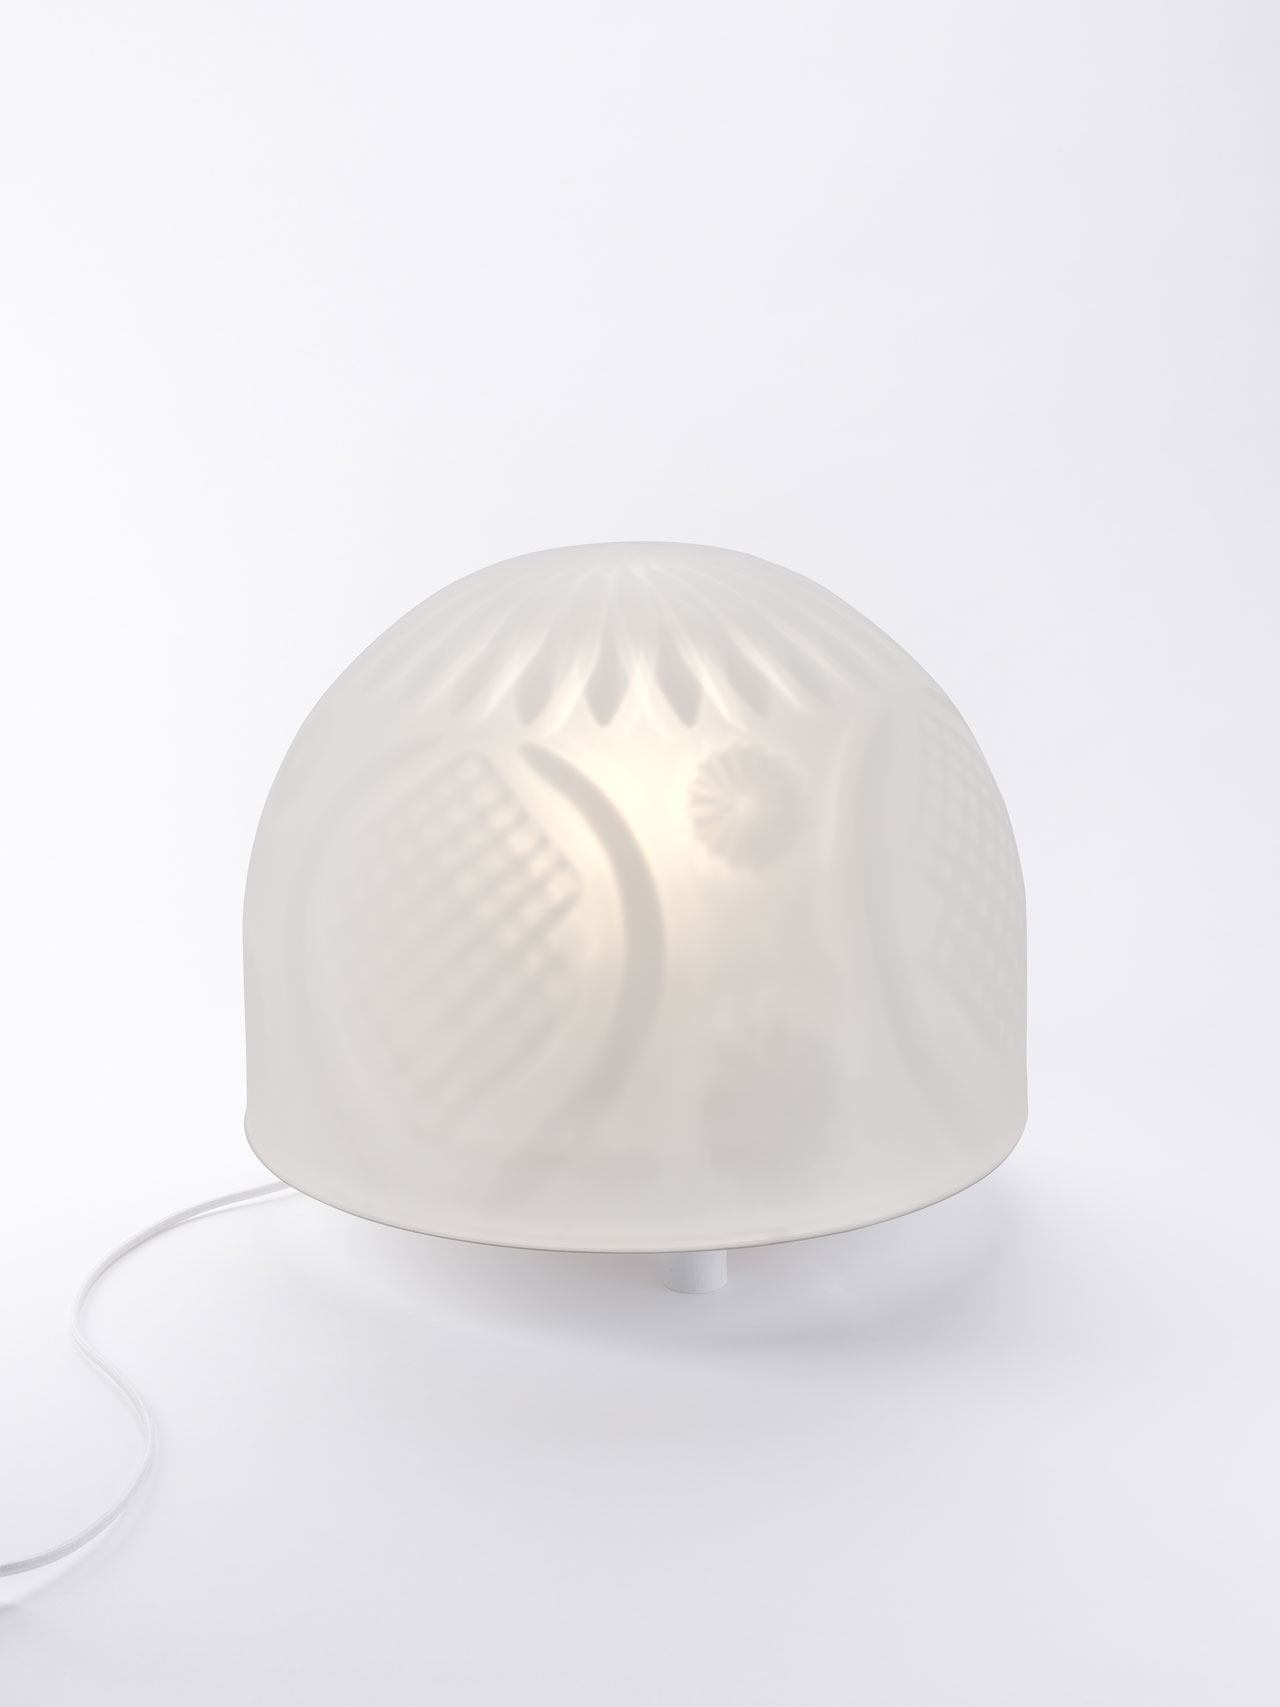 New table lamps by Nathalie Dewezfor Val Saint Lambert.